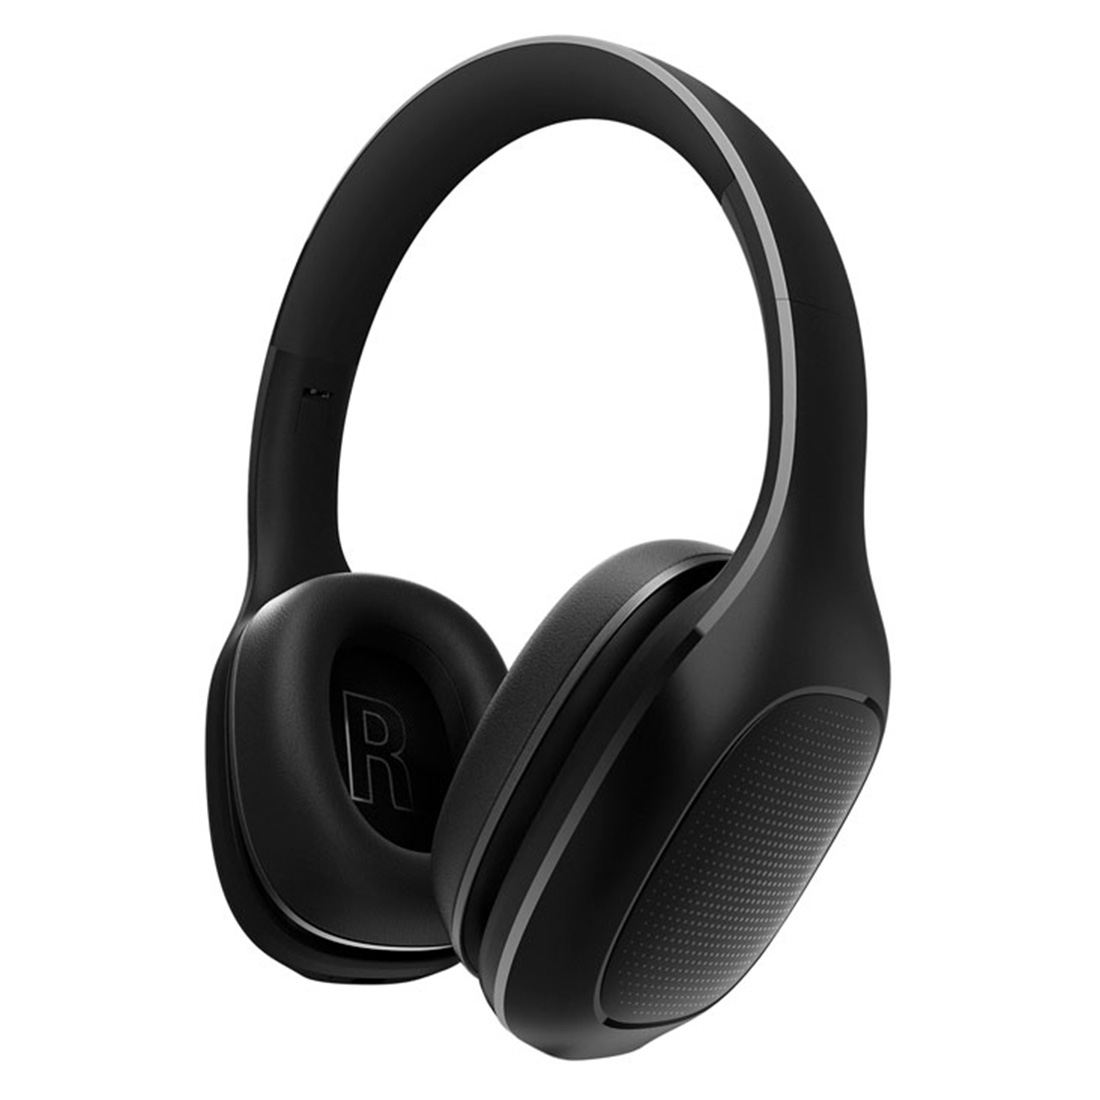 Bluetooth Headset As Wireless Mic: Original Xiaomi Folding Bluetooth V4.1 Headphone Wireless Headsets With Mic, For Xiaomi Mi 8